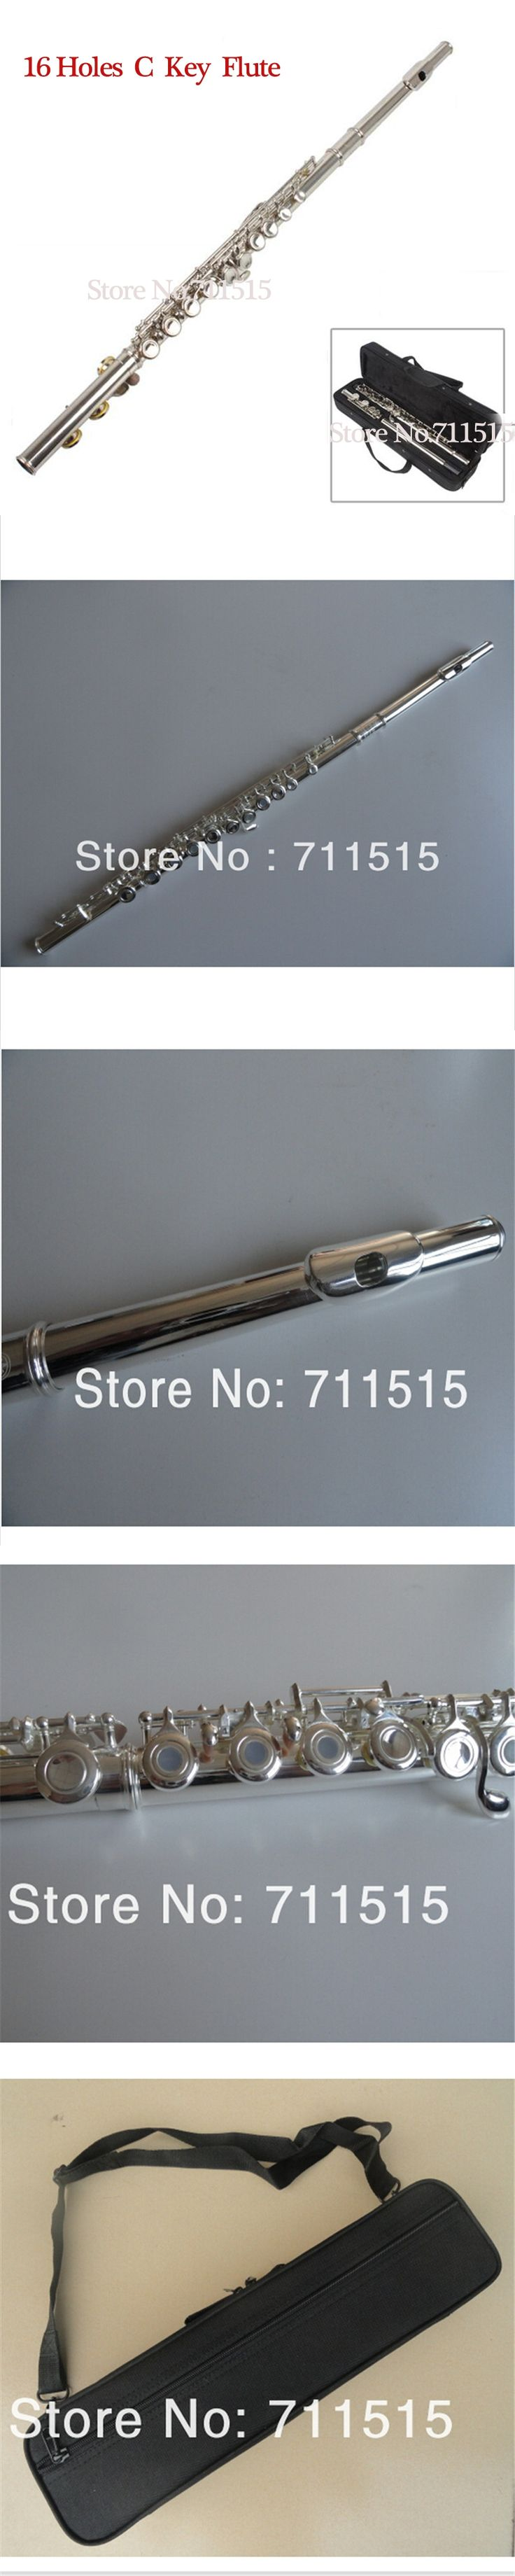 Silver-Plated Western Concert Flute 271s 16 16C Holes C Key Metal Flauta Cupronickel Woodwind Instruments Musical Key Case